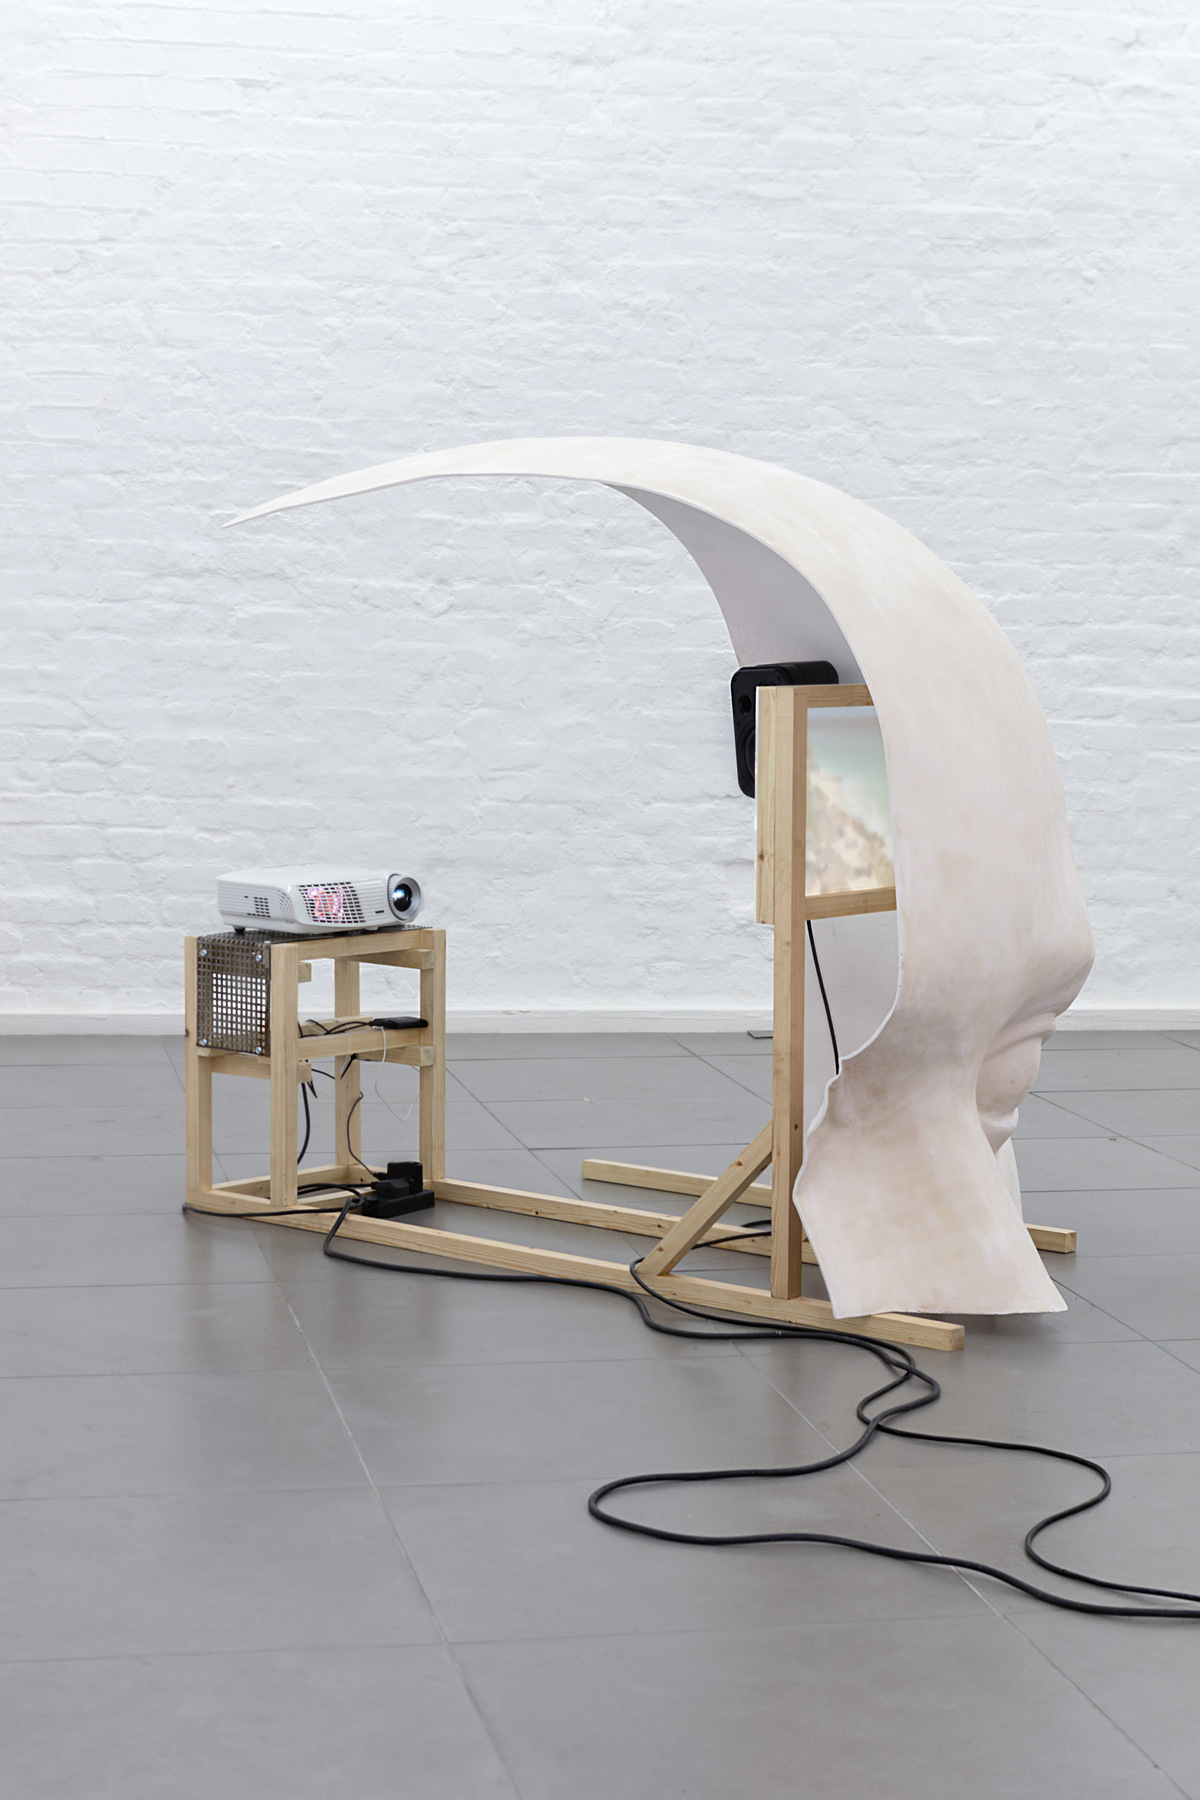 11. Anne de Vries, SUBMISSION 2015, wood, metal, fibreglass resin, audio, video